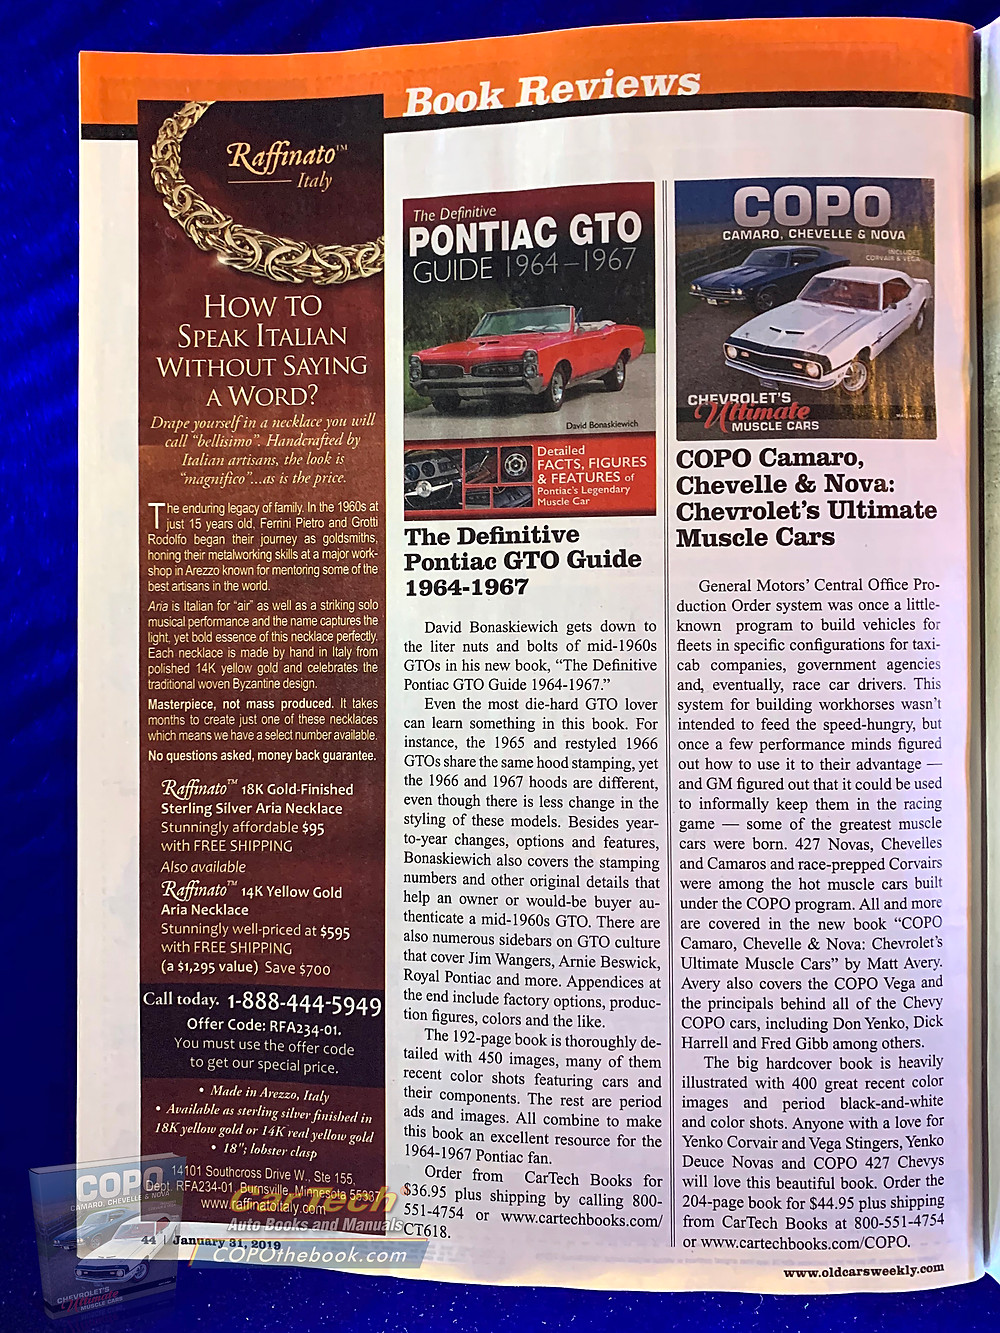 The January 31st edition of Old Cars Weekly reviews COPO the book.